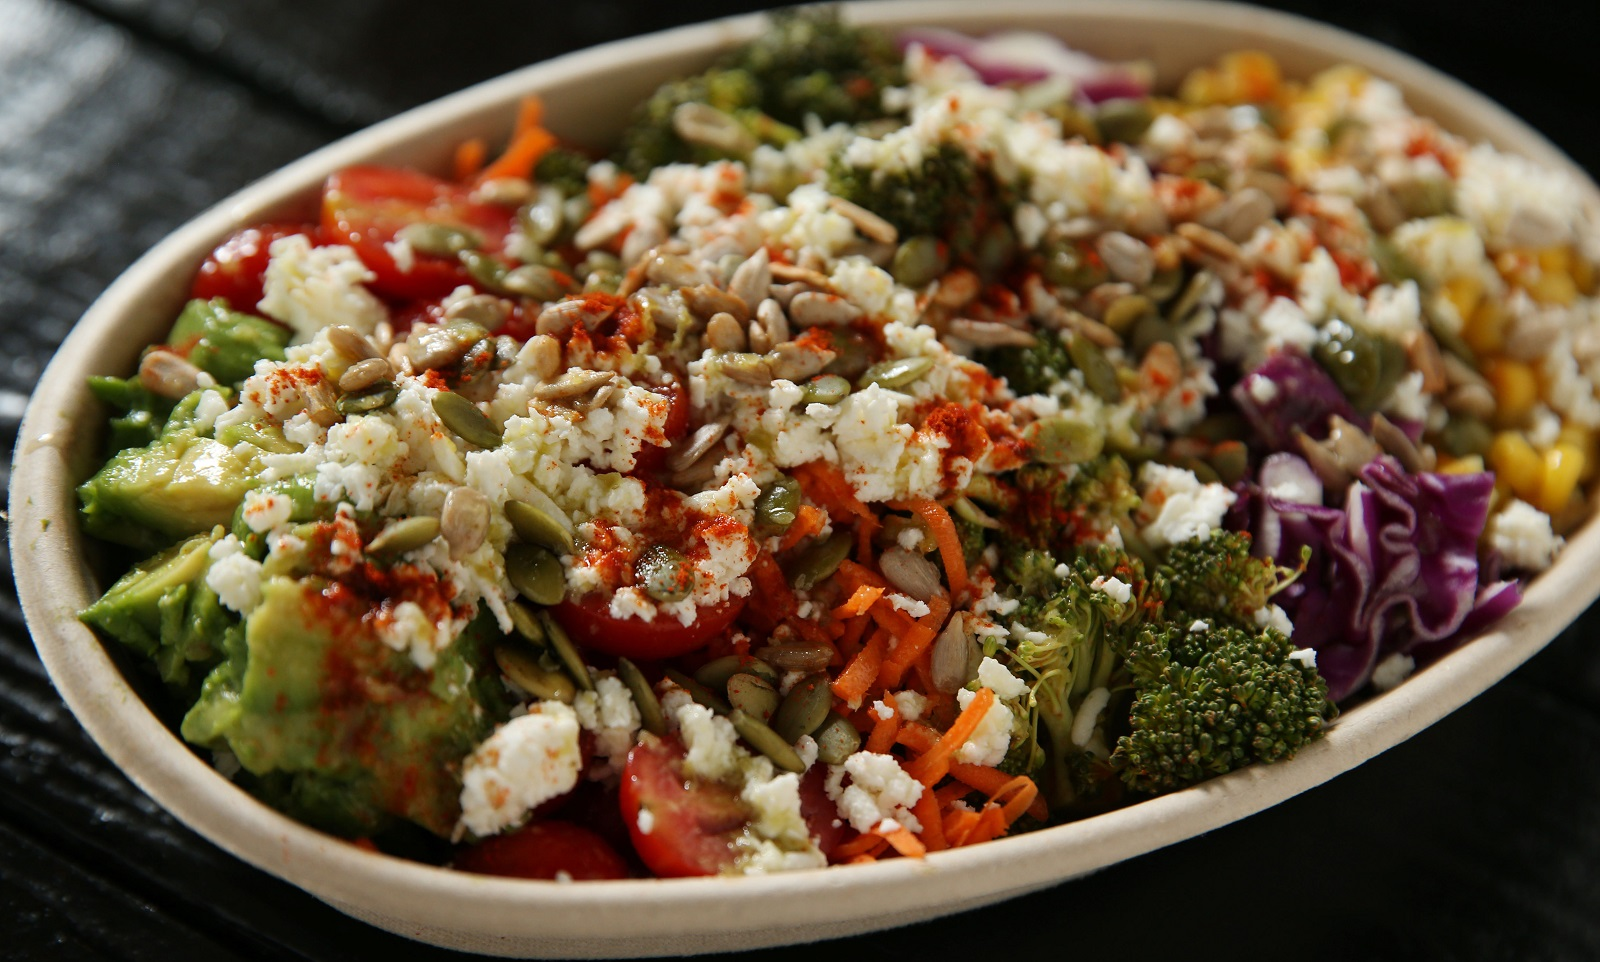 Newbury Salad's spicy quinoa crunch bowl is made with spicy quinoa, raw organic corn, red cabbage, spicy broccoli, carrots, grape tomatoes, avocado, spicy sunflower seeds, toasted pumpkin seeds, feta and a jalapeño lime cilantro dressing.  (Sharon Cantillon/Buffalo News)